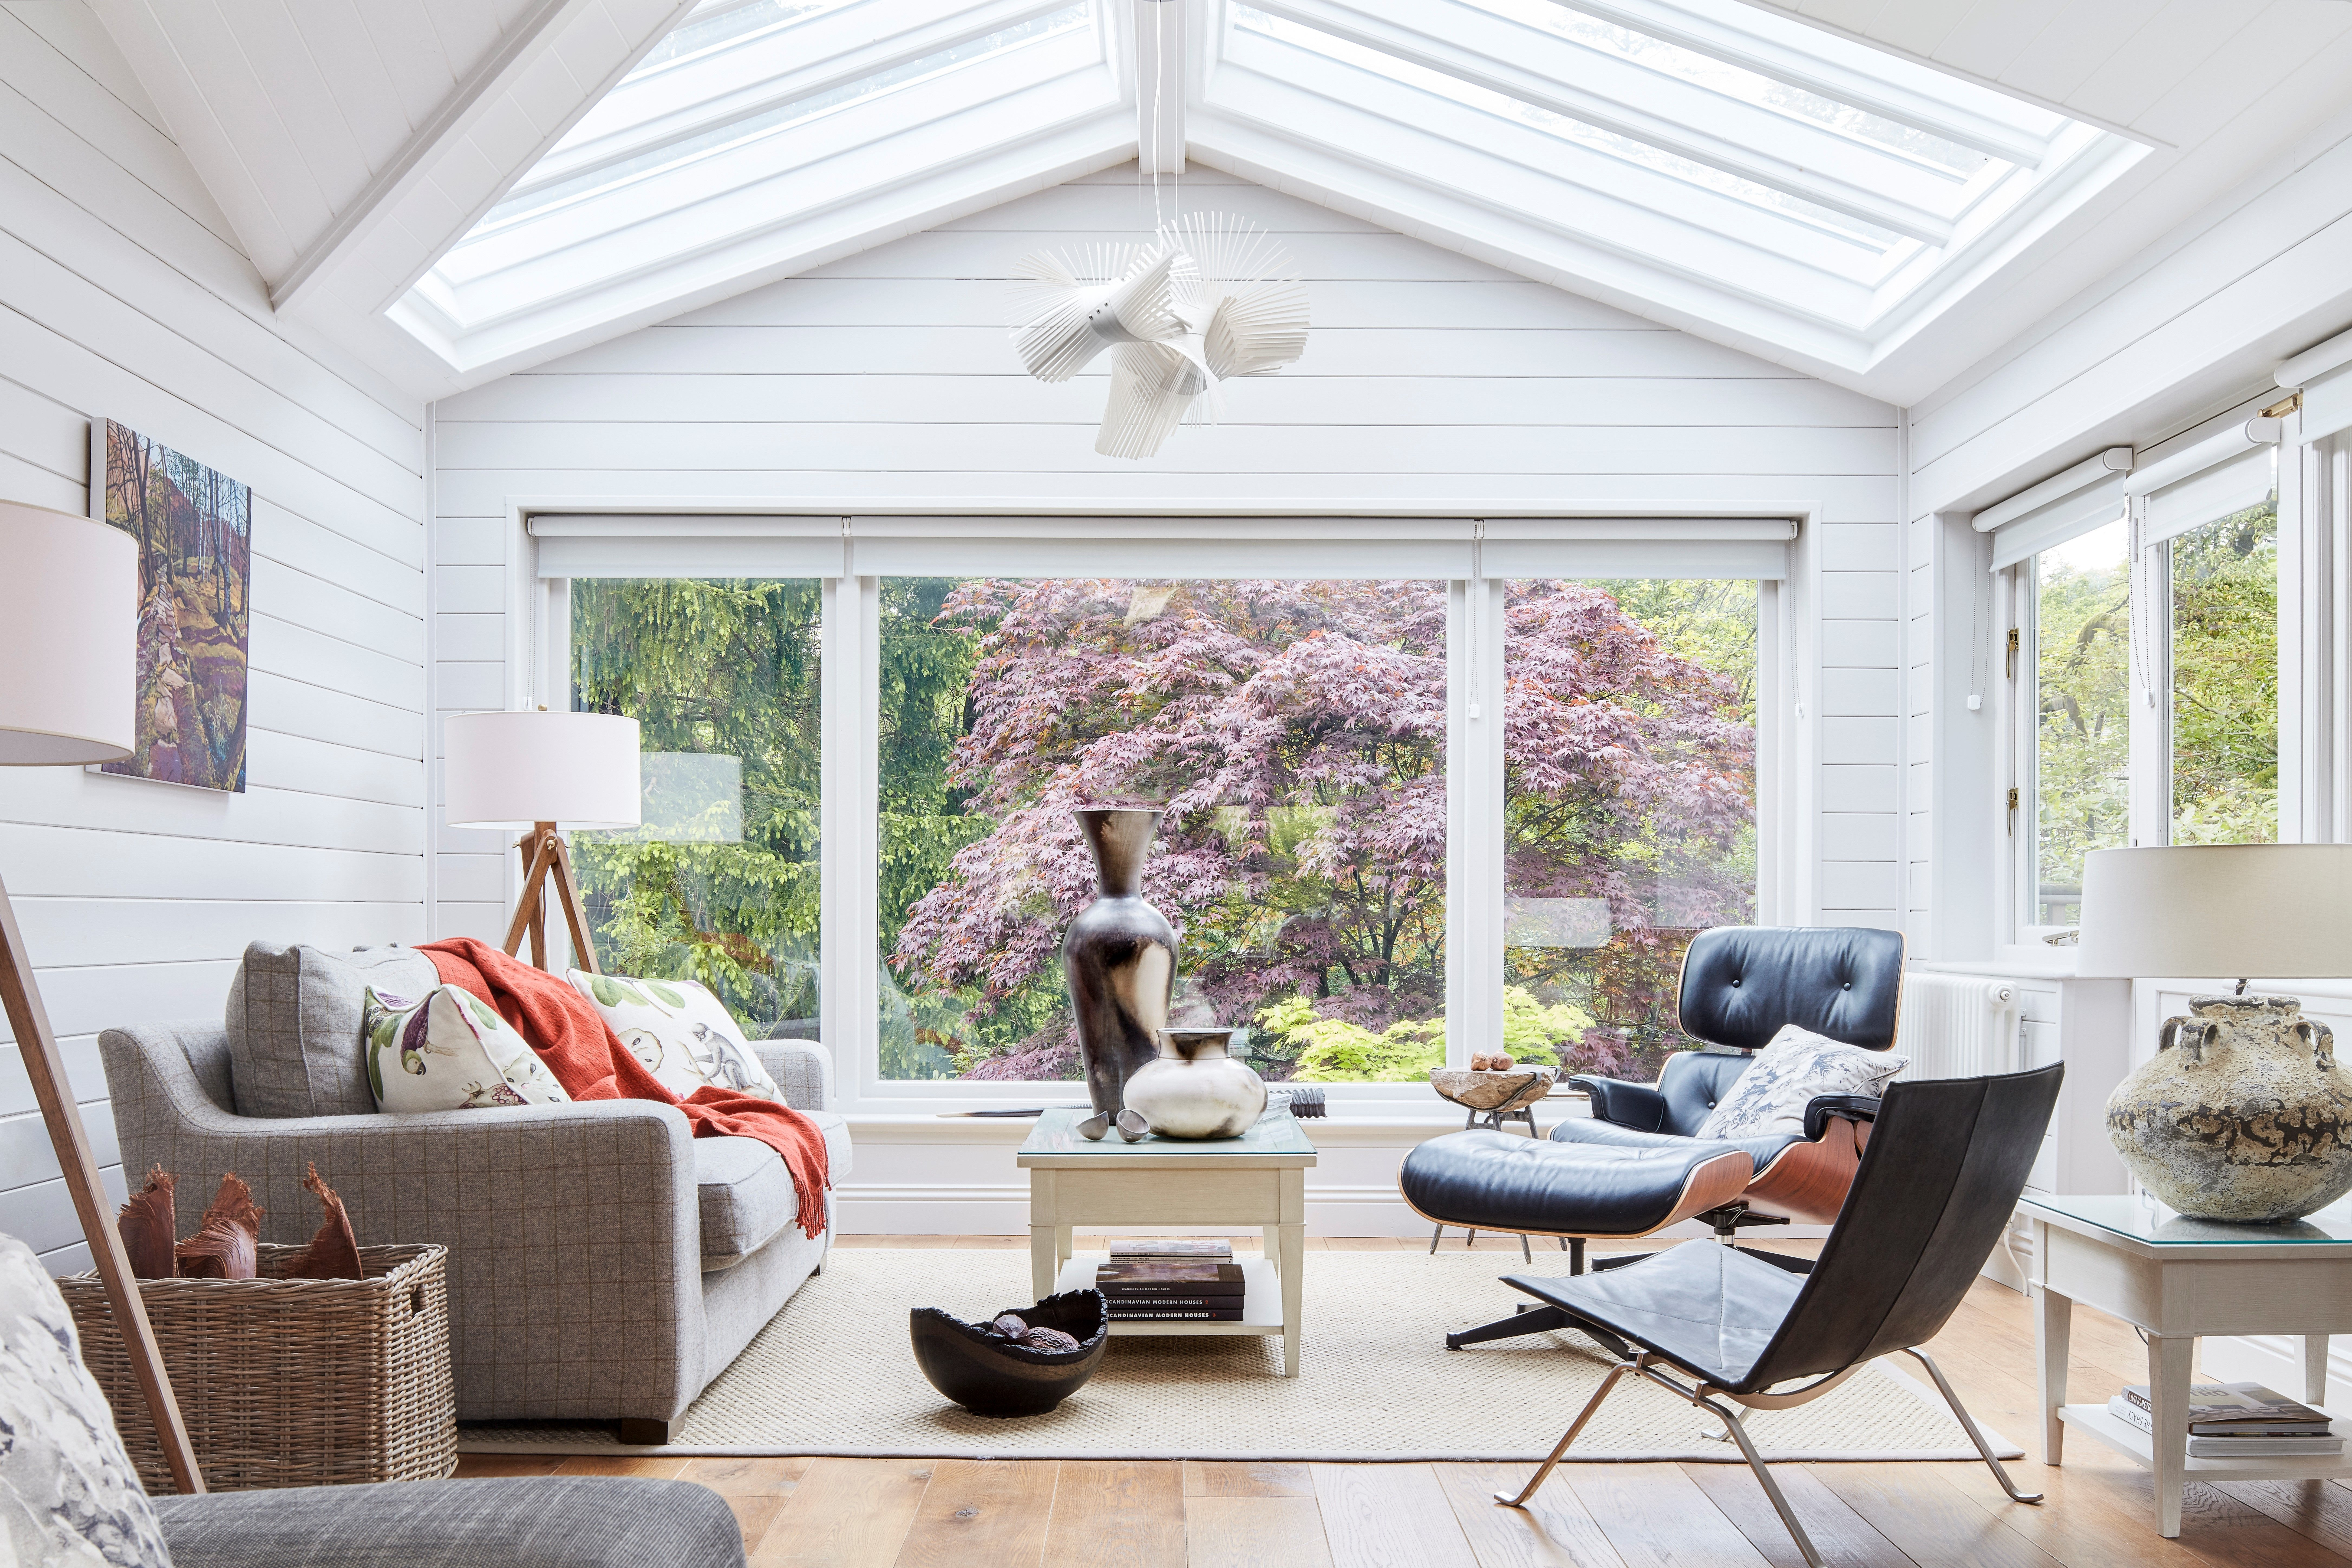 Interior Design: Lake District property transformed into modern family home